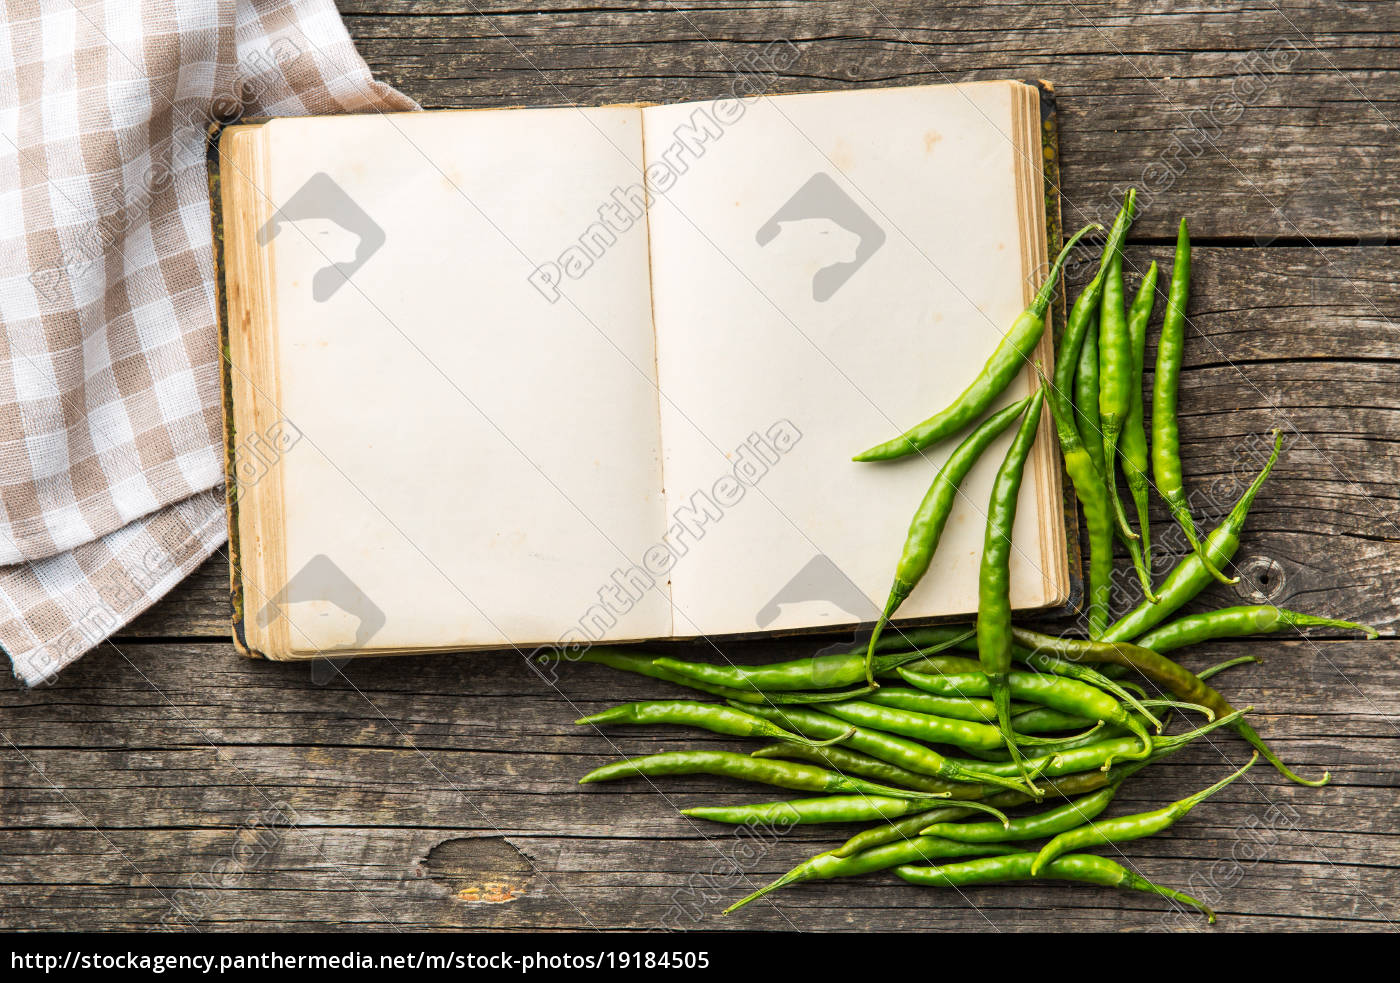 recipe, book, and, green, chili, peppers. - 19184505